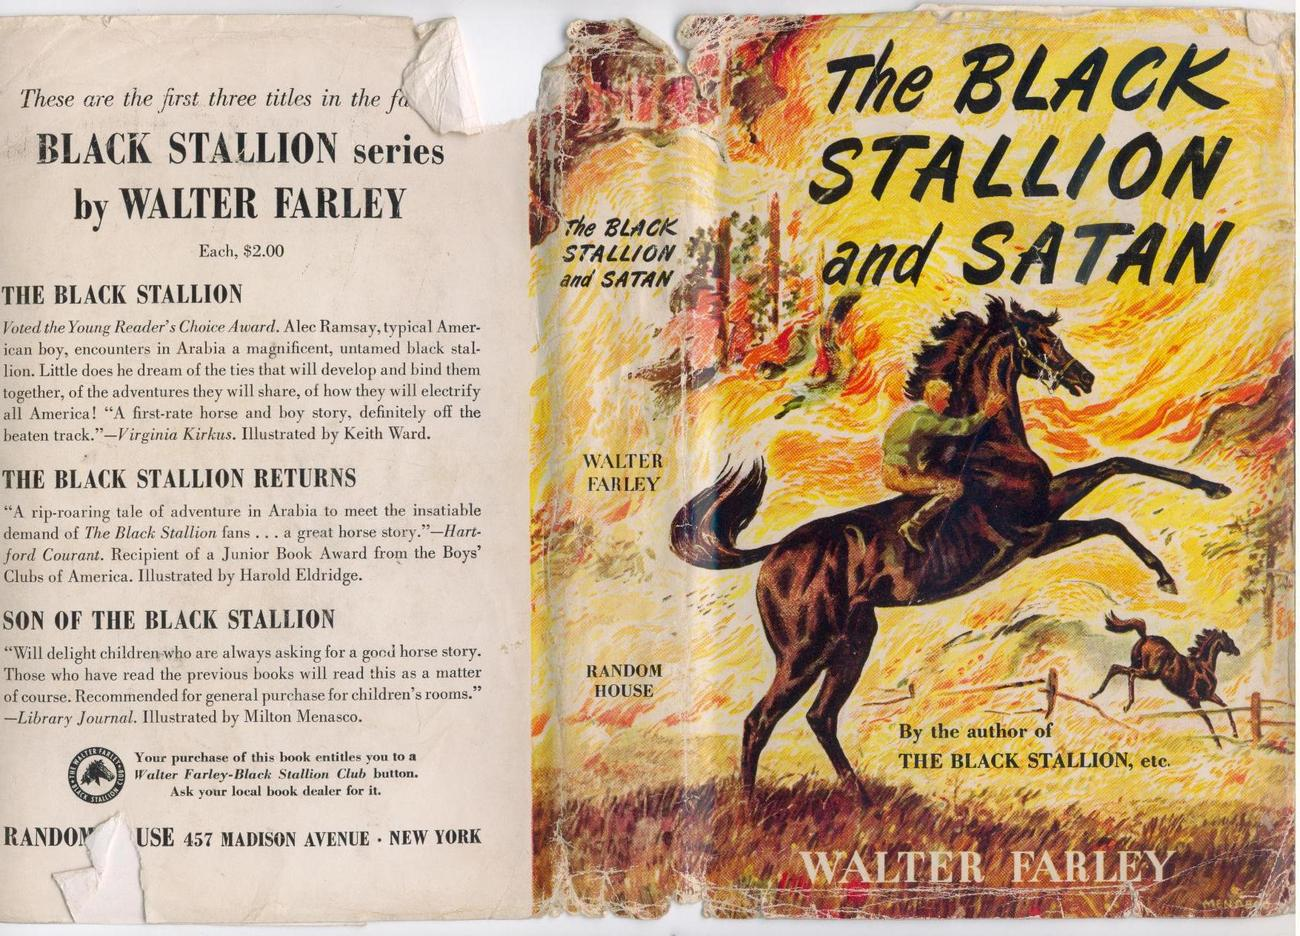 Walter Farley  THE BLACK STALLION & SATAN  1949 1st printing